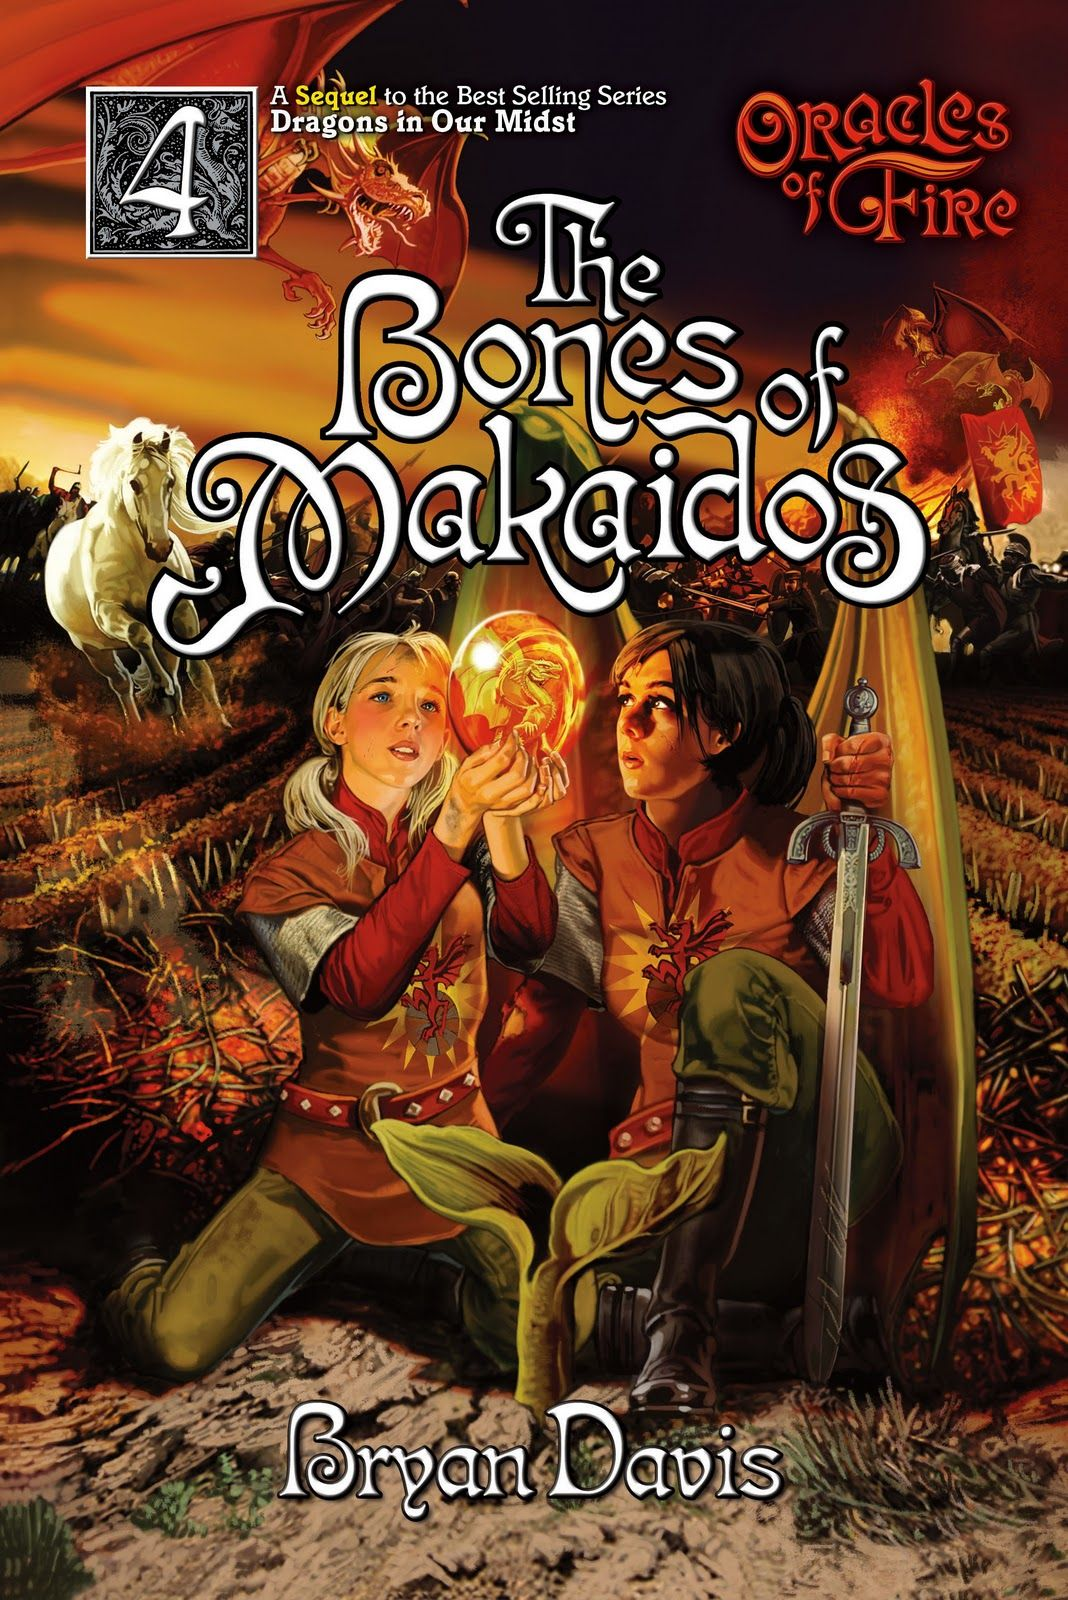 The Bones Of Makaidos, Oracles Of Fire 4, By Bryan Davis The Perrrrrrfect